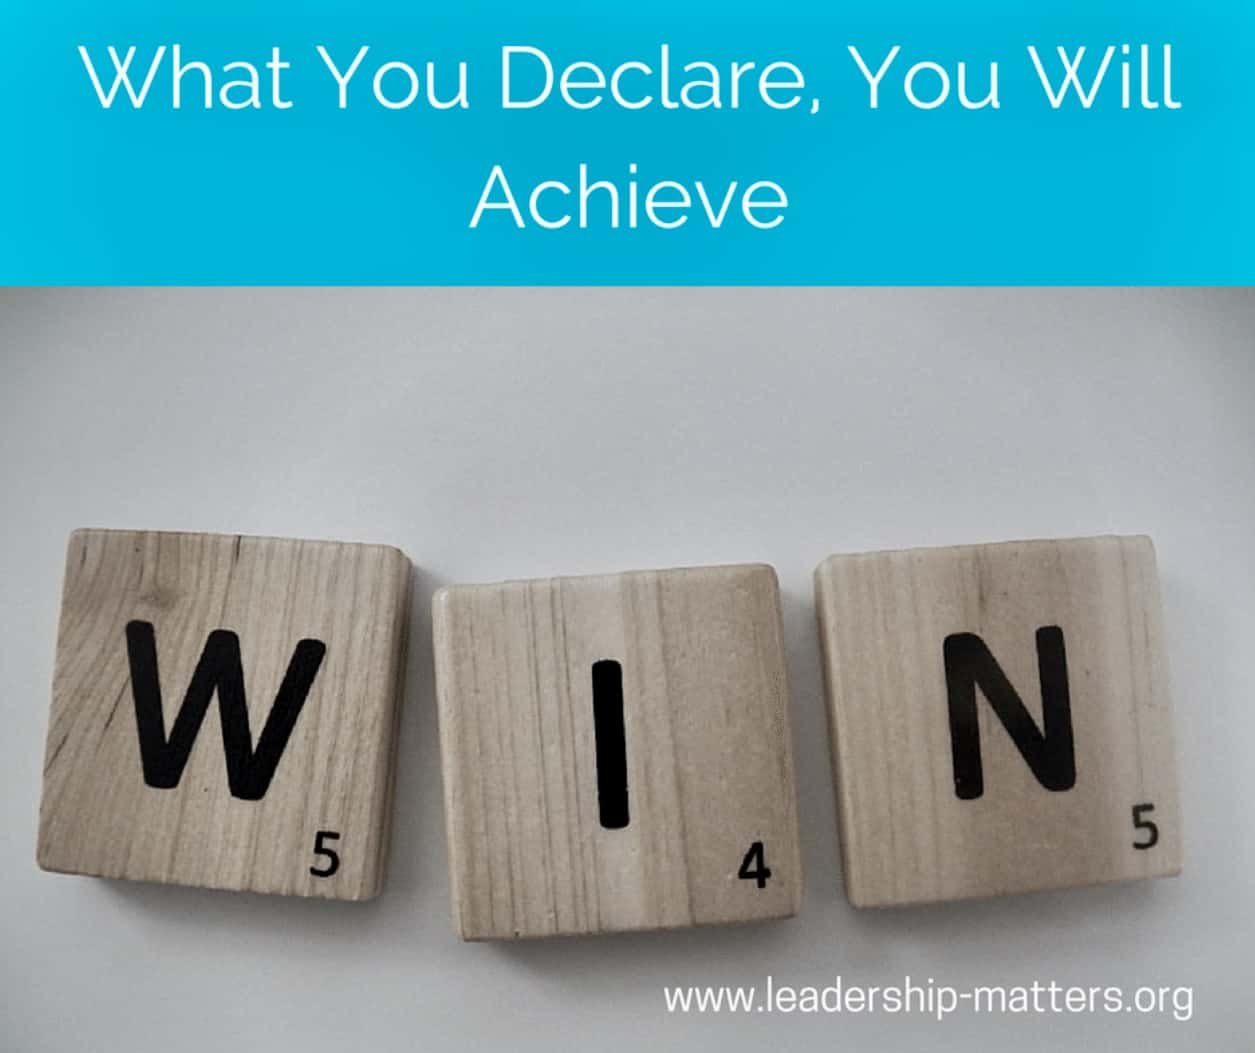 What You Declare, You Will Achieve. IMG_3336